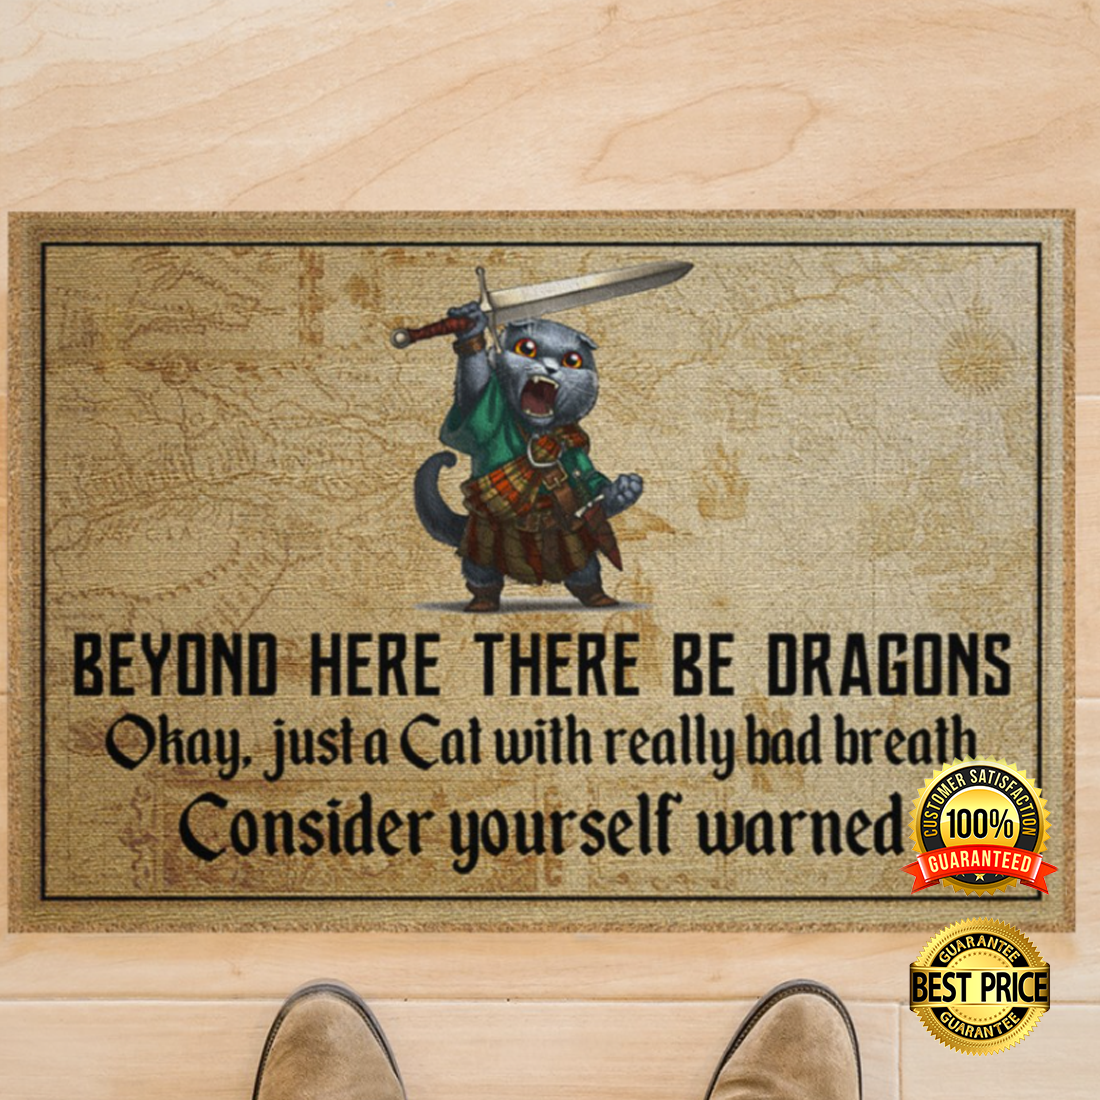 BEYOND HERE THERE BE DRAGONS OKAY JUST A CAT WITH REALLY BAD BREATH DOORMAT 6